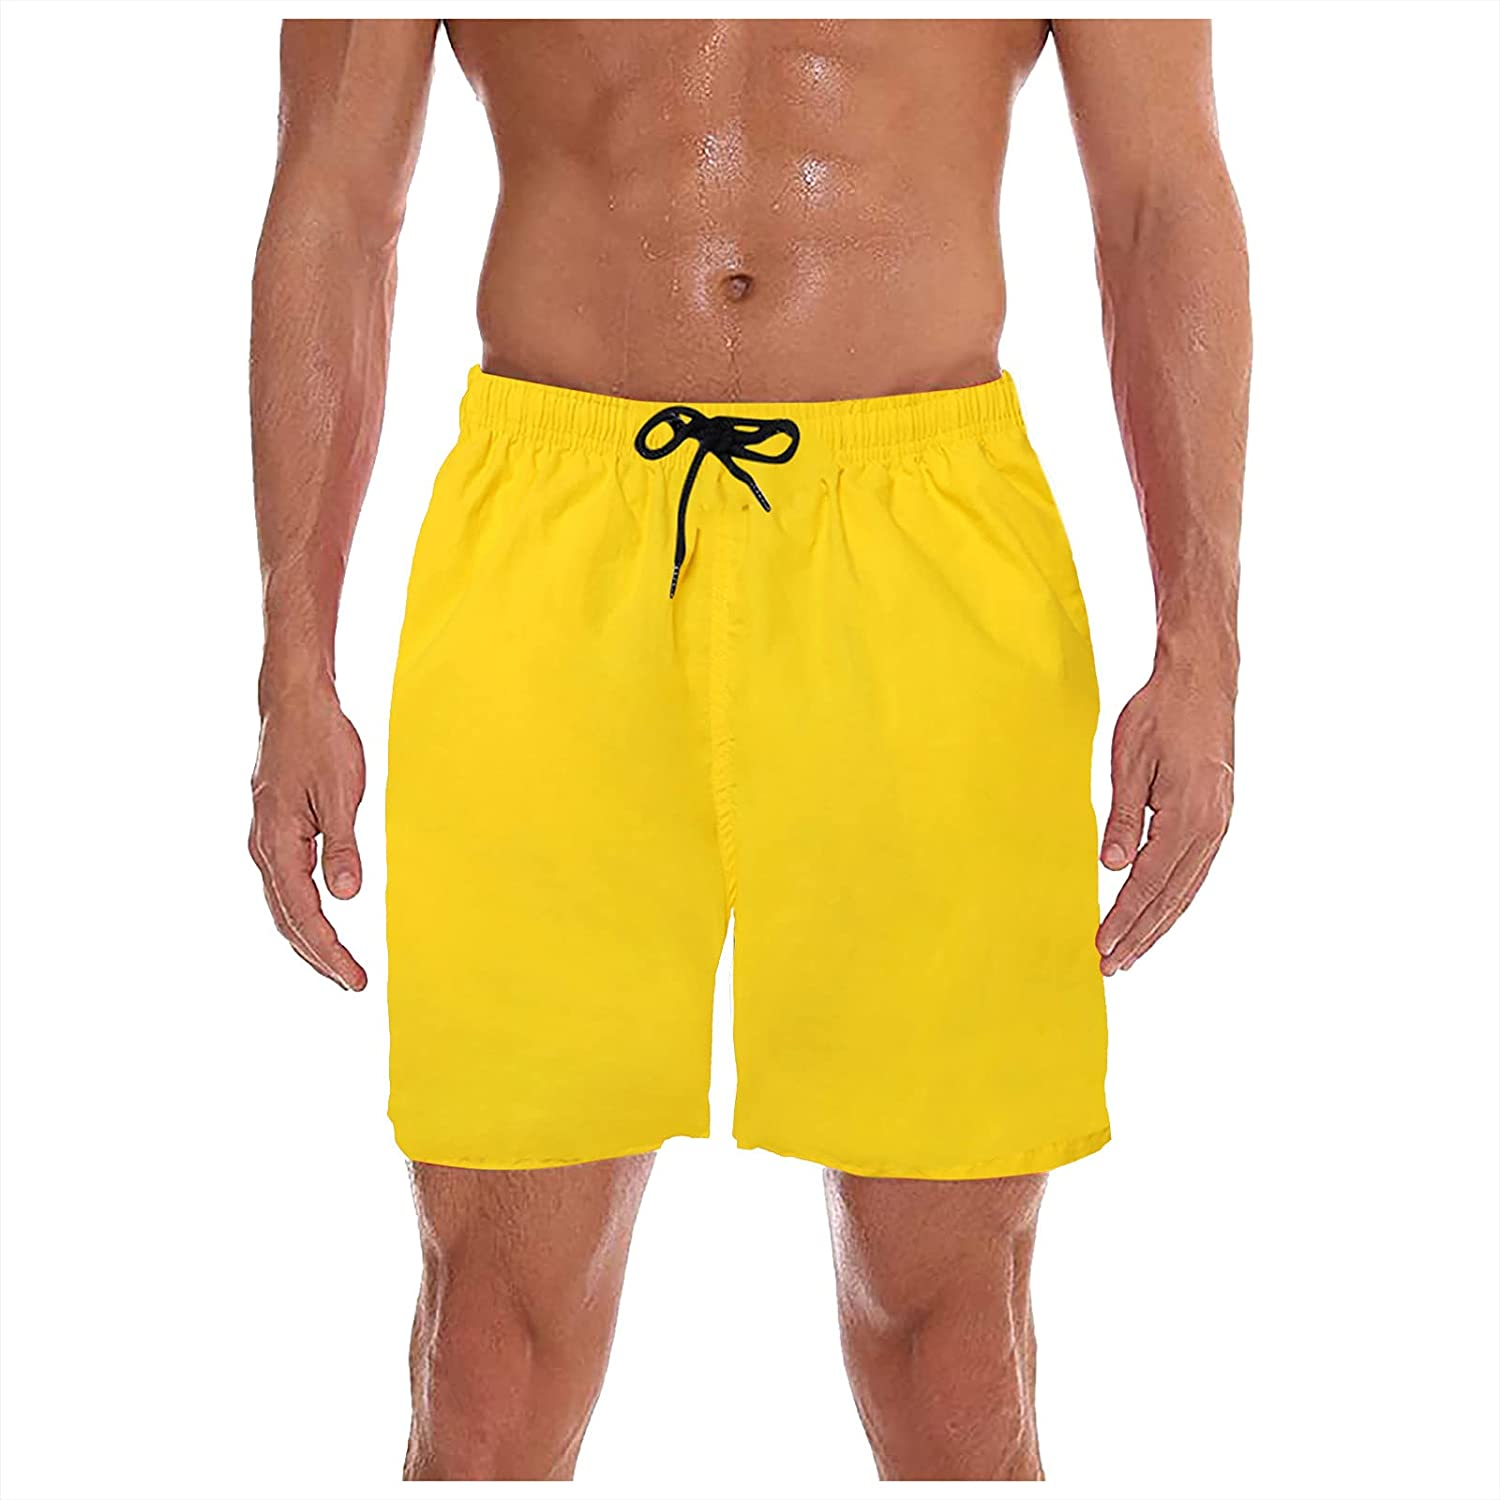 Maryia Mens Swim Shorts Summer Beach Casual Classic Loose Fit Solid Quick Dry Sports Athletic Trunks Plus Size Swimsuit